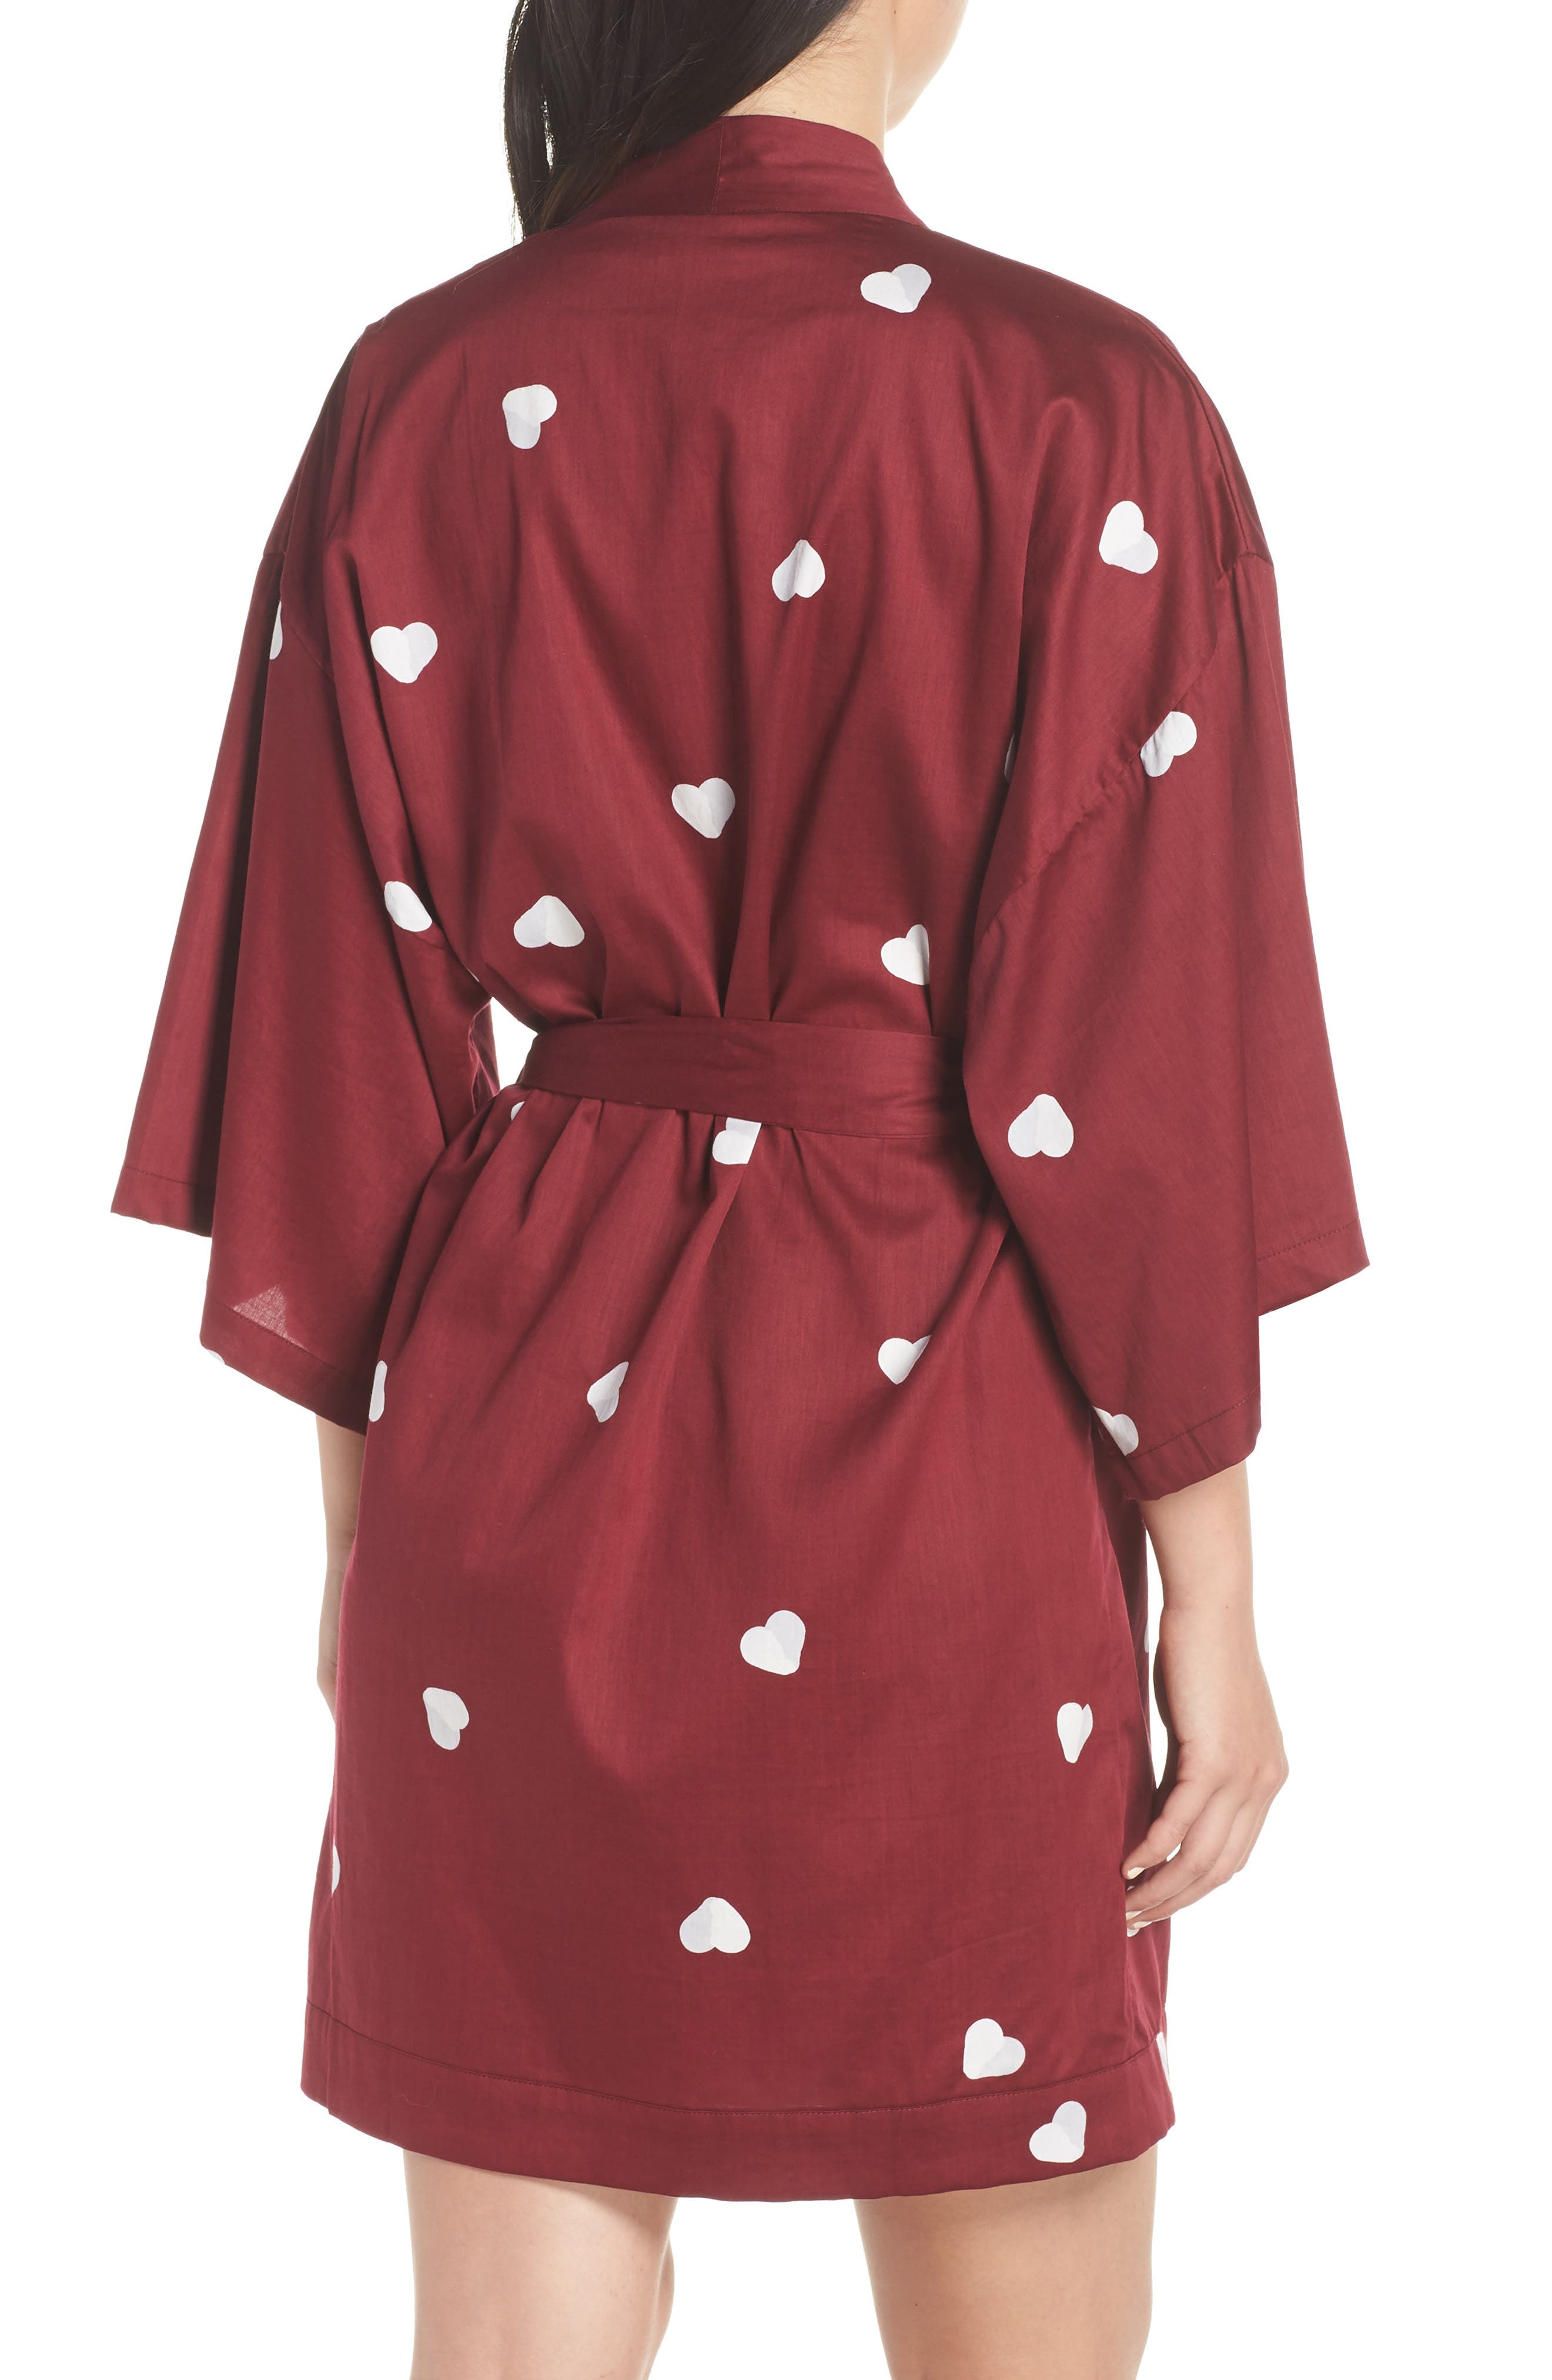 Margaux Short Cotton Robe,                             Alternate thumbnail 2, color,                             LONELY HEARTS MAROON